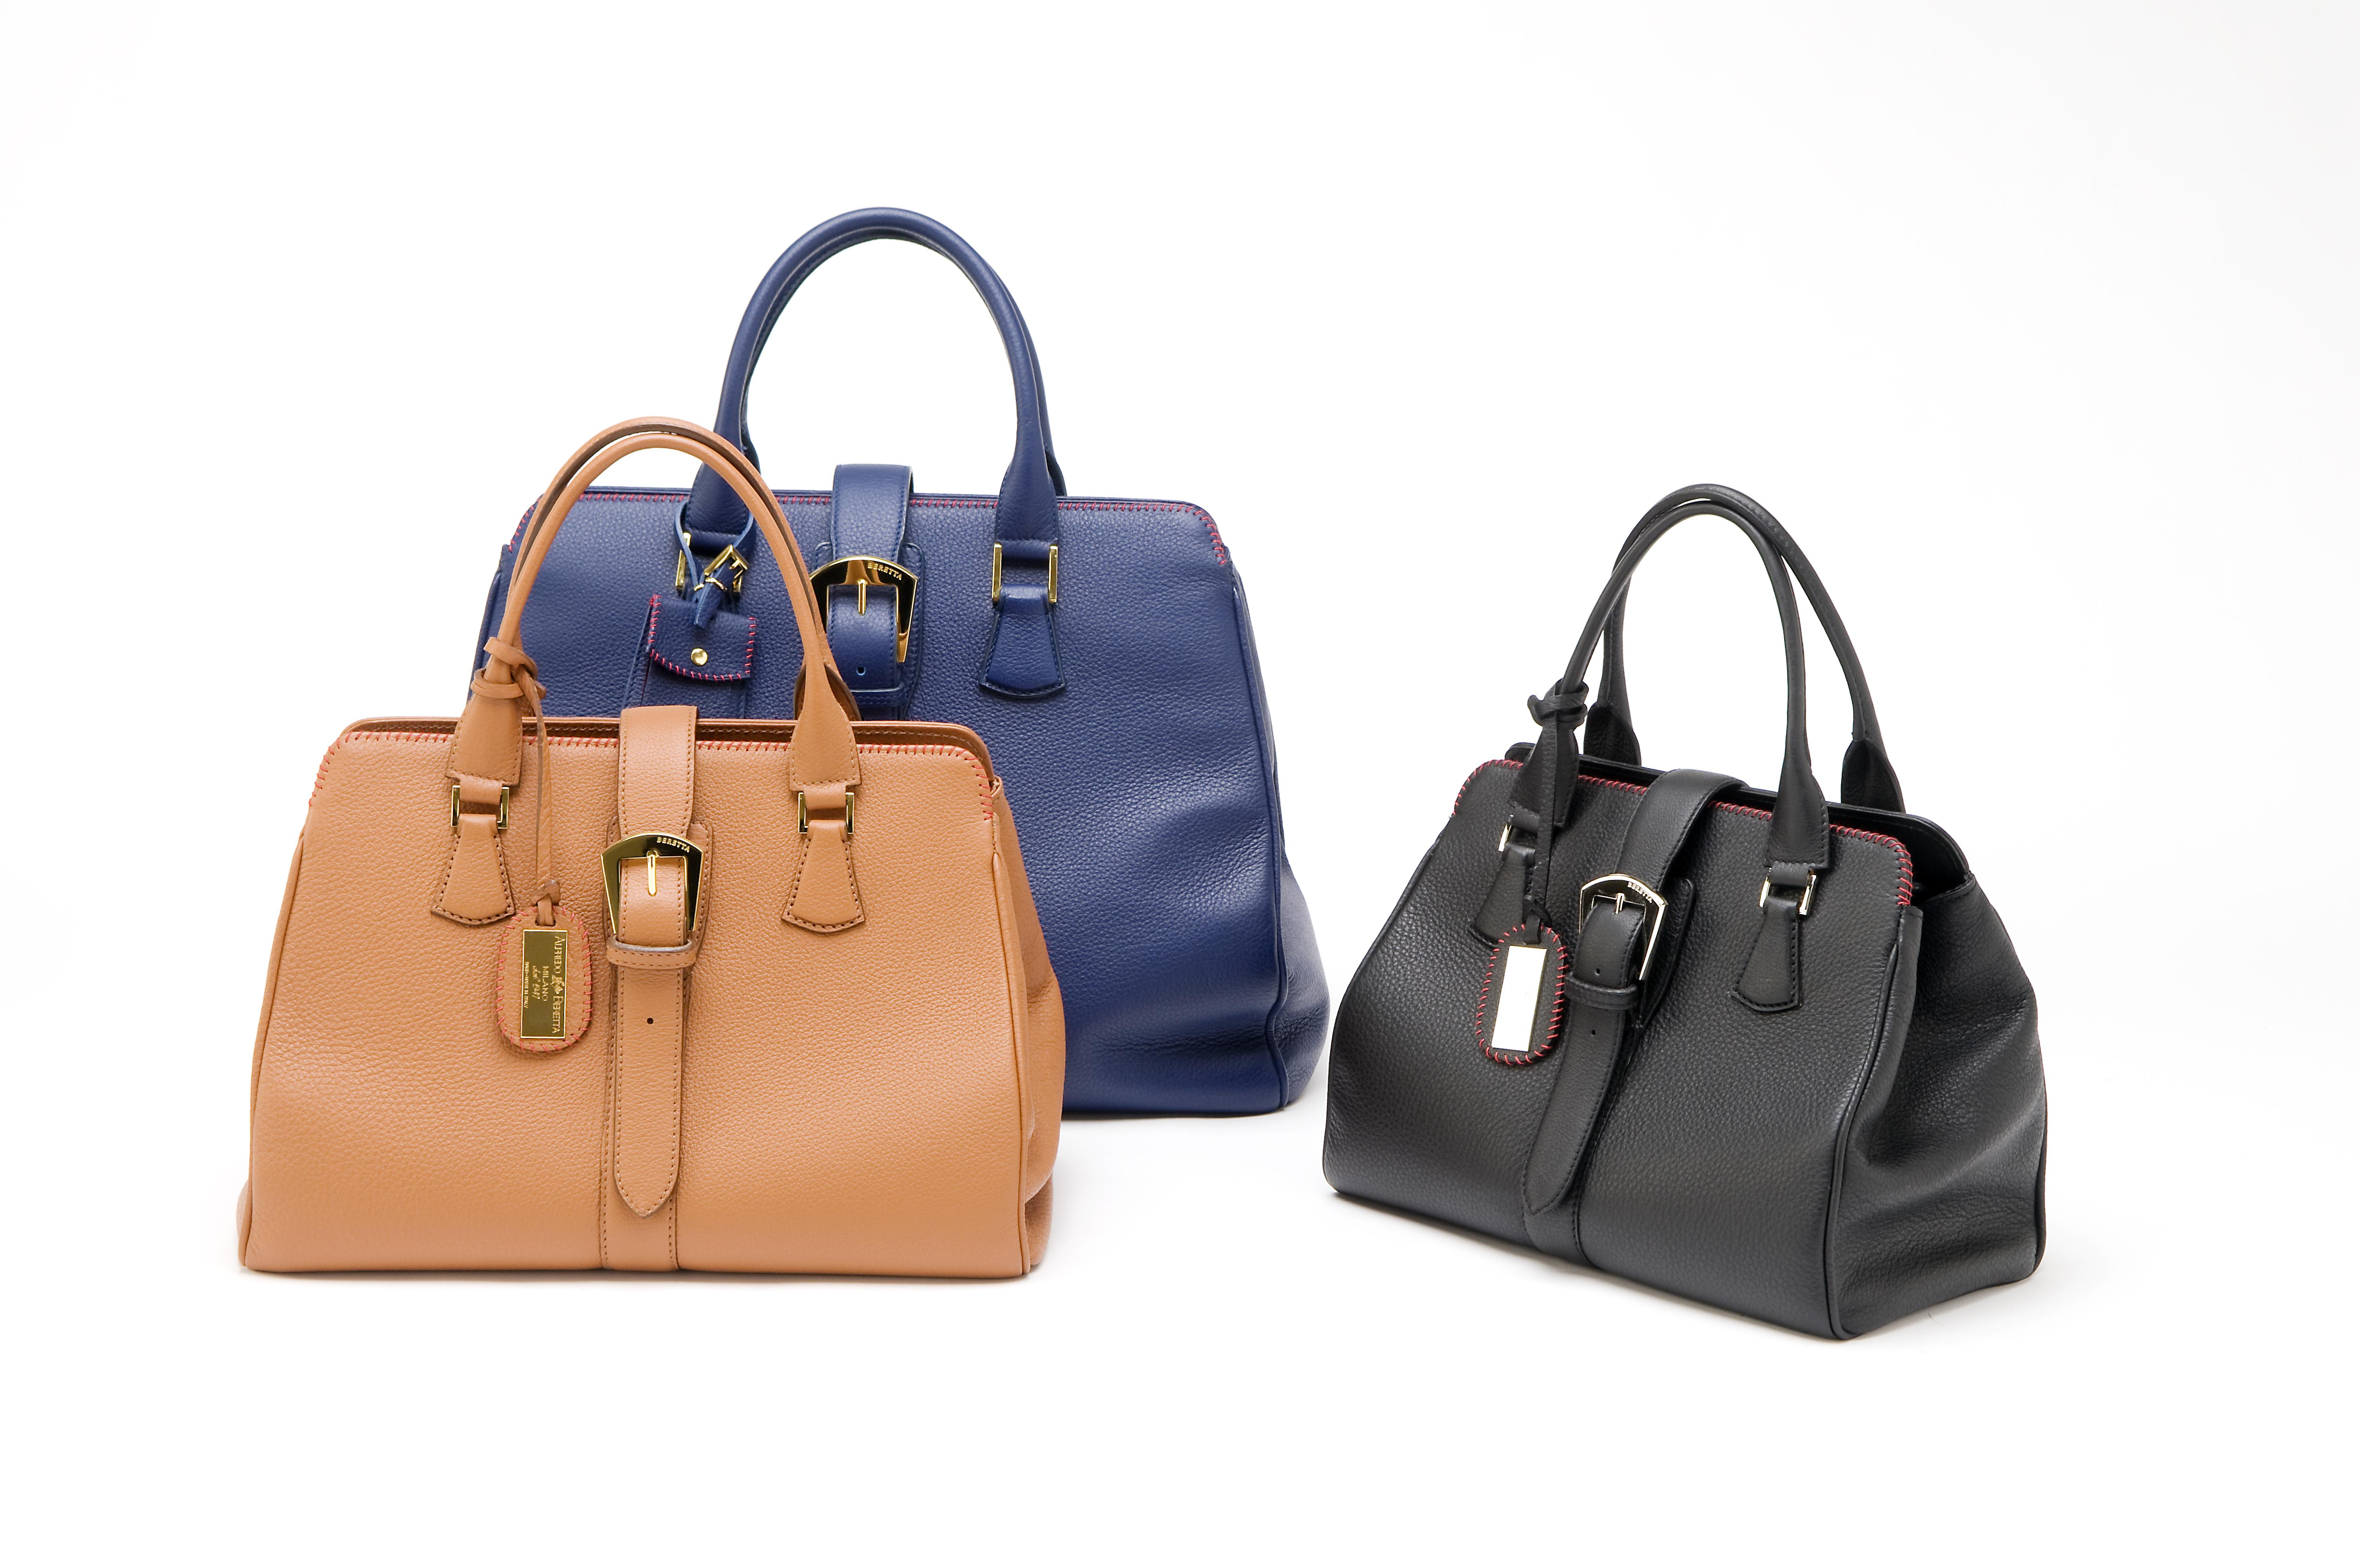 elite luxury accessories lady leather hand bag